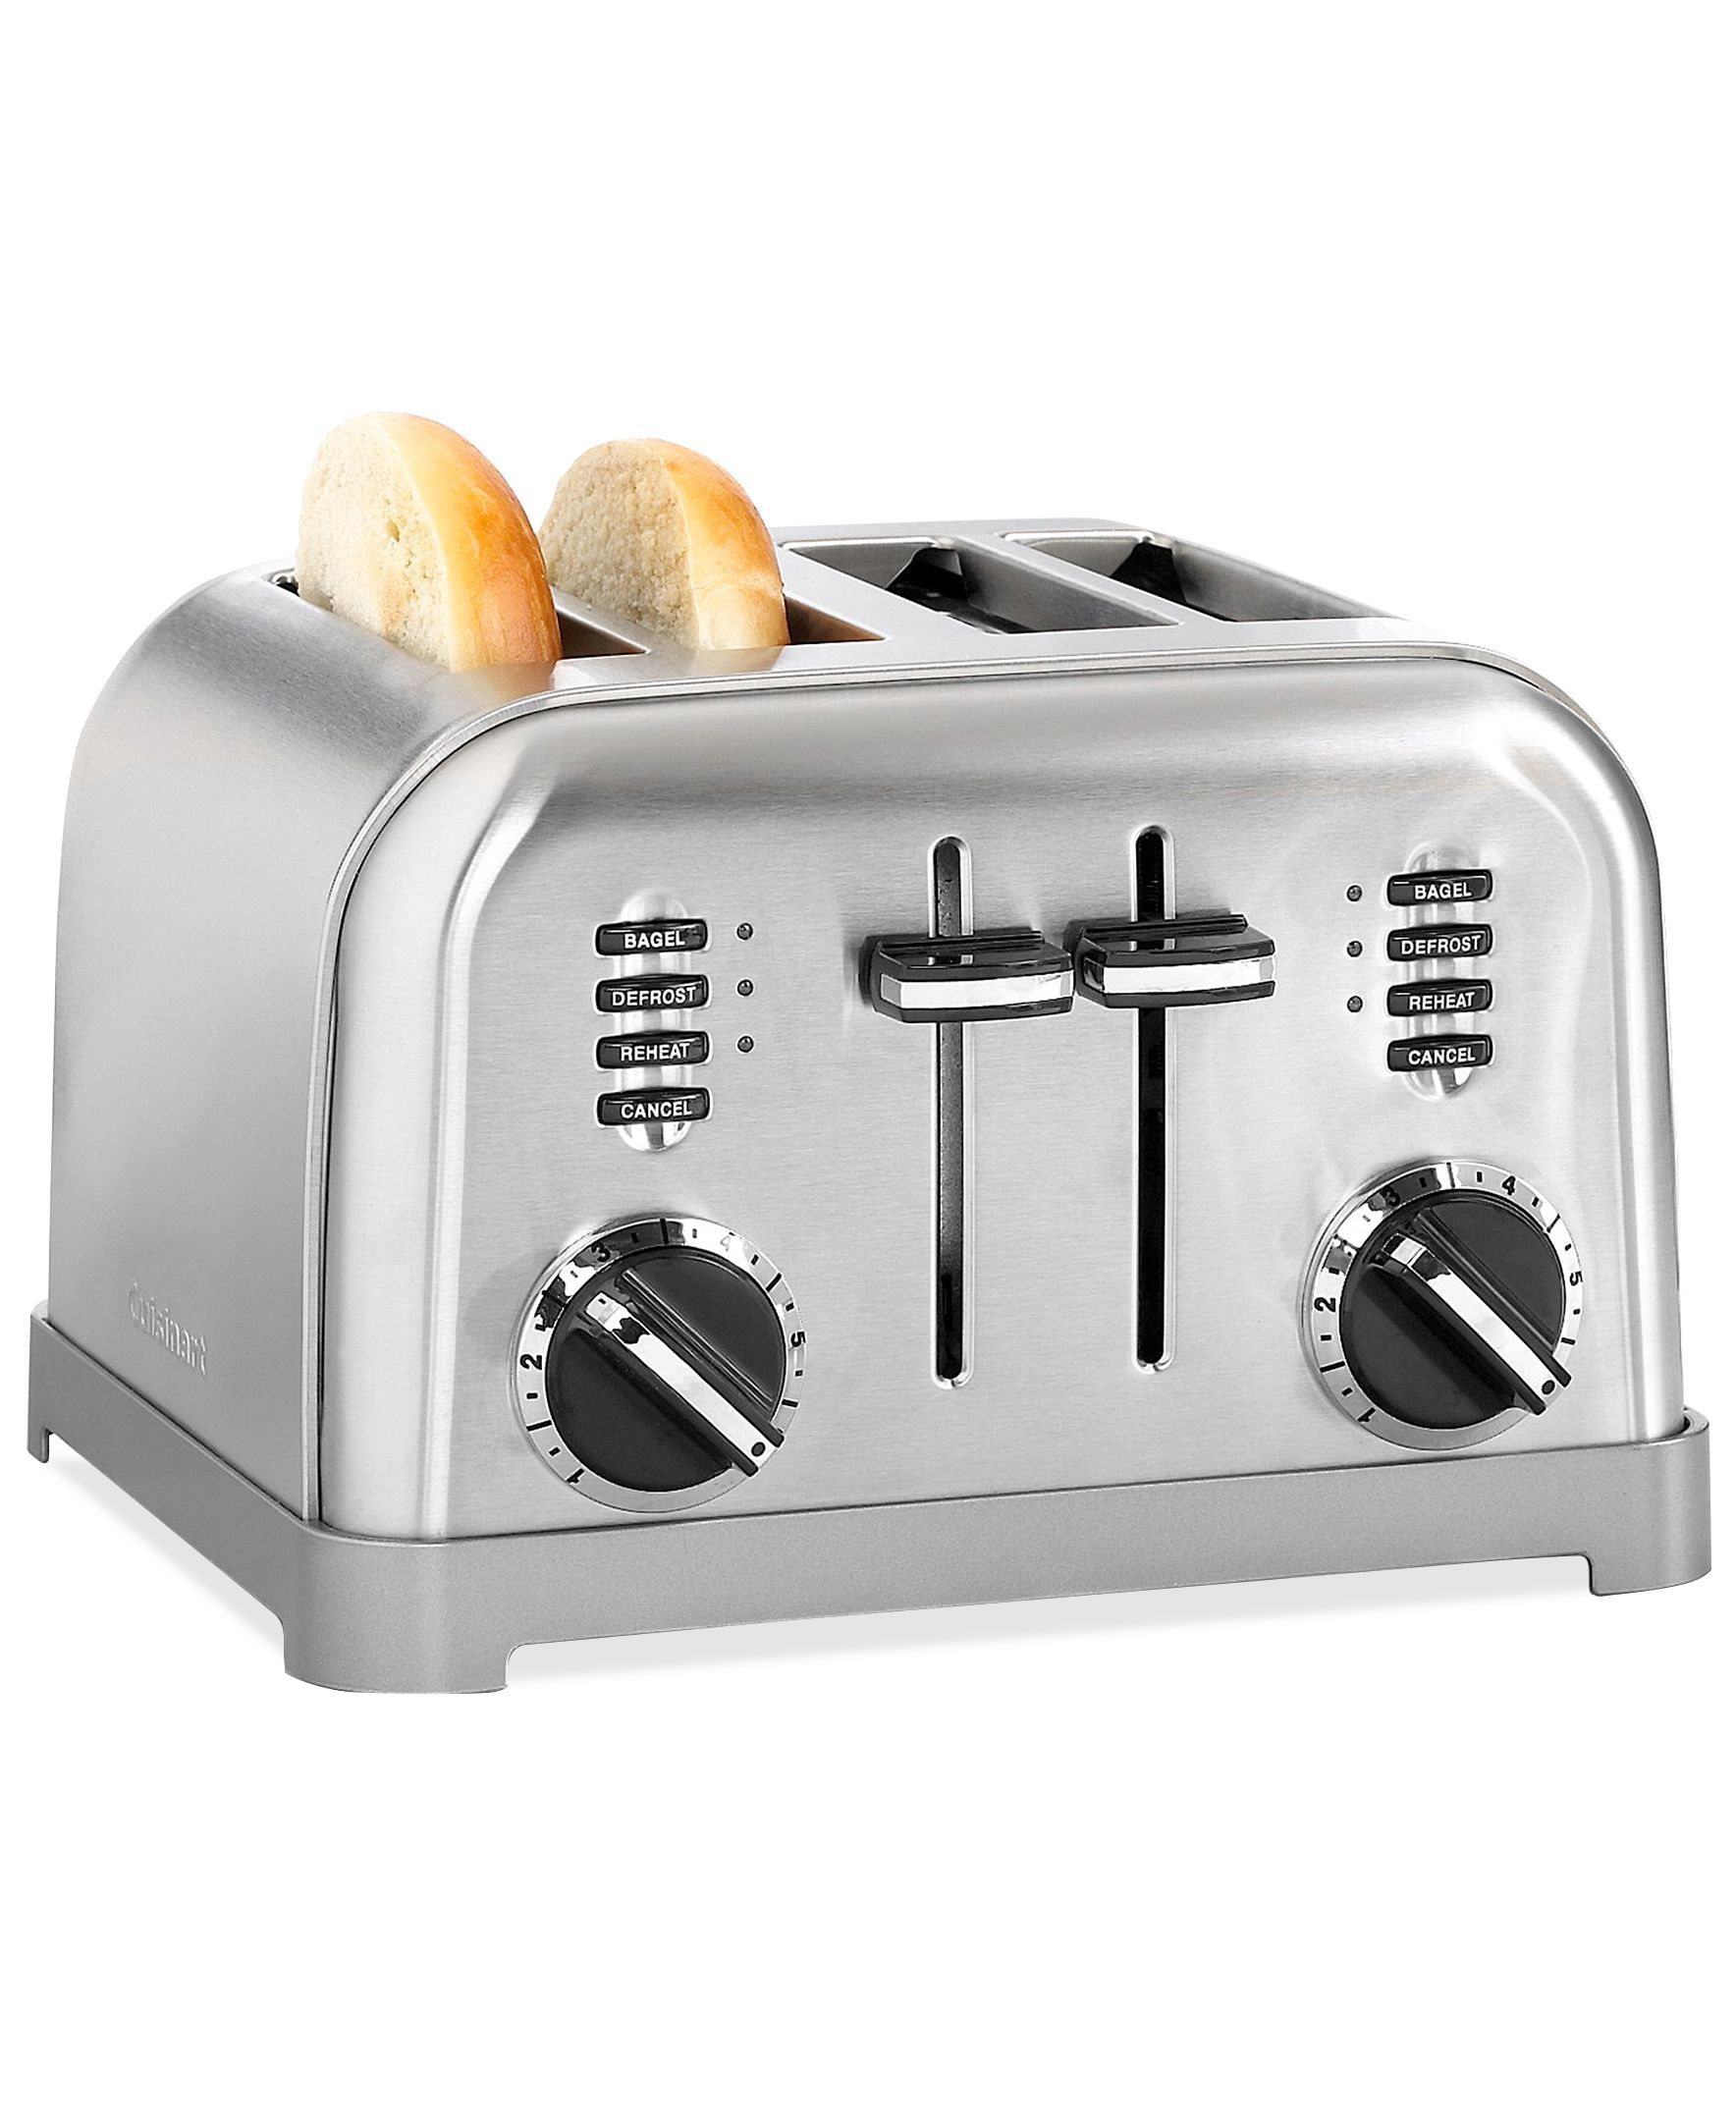 cuisinart steel toaster res metal slice classic itm ebay stainless